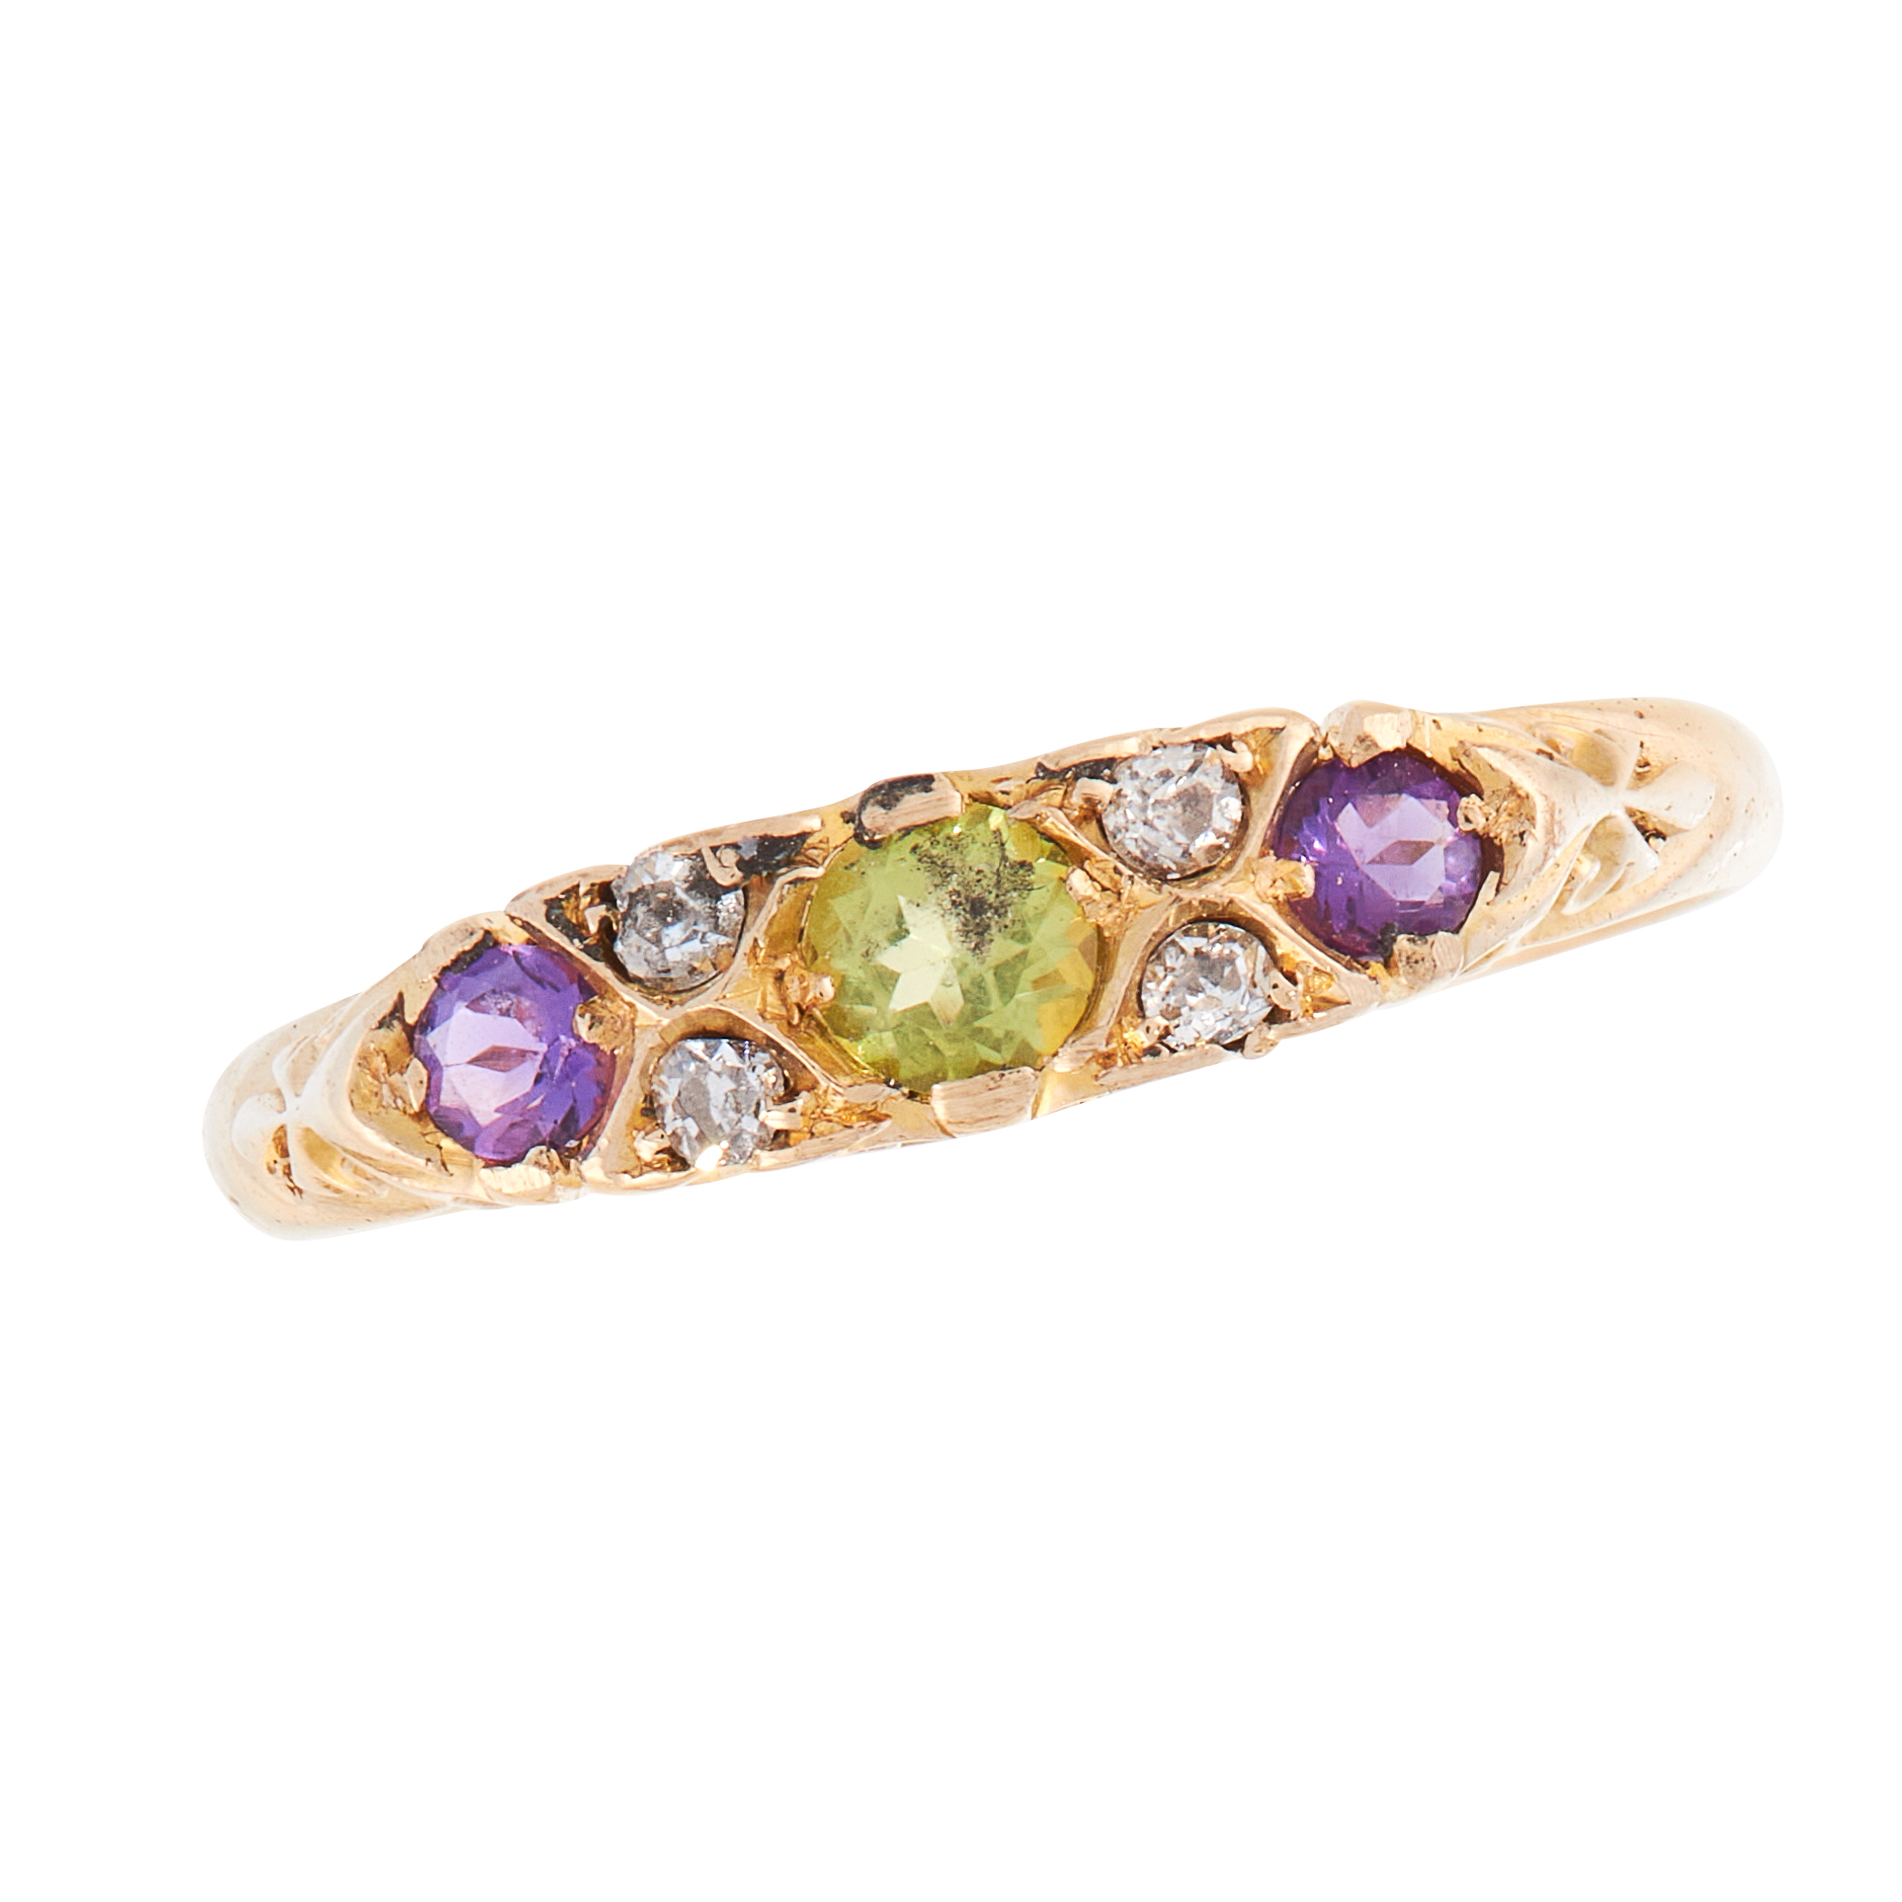 AN ANTIQUE AMETHYST, PERIDOT AND DIAMOND SUFFRAGETTE DRESS RING, 1908 in 18ct yellow gold, the